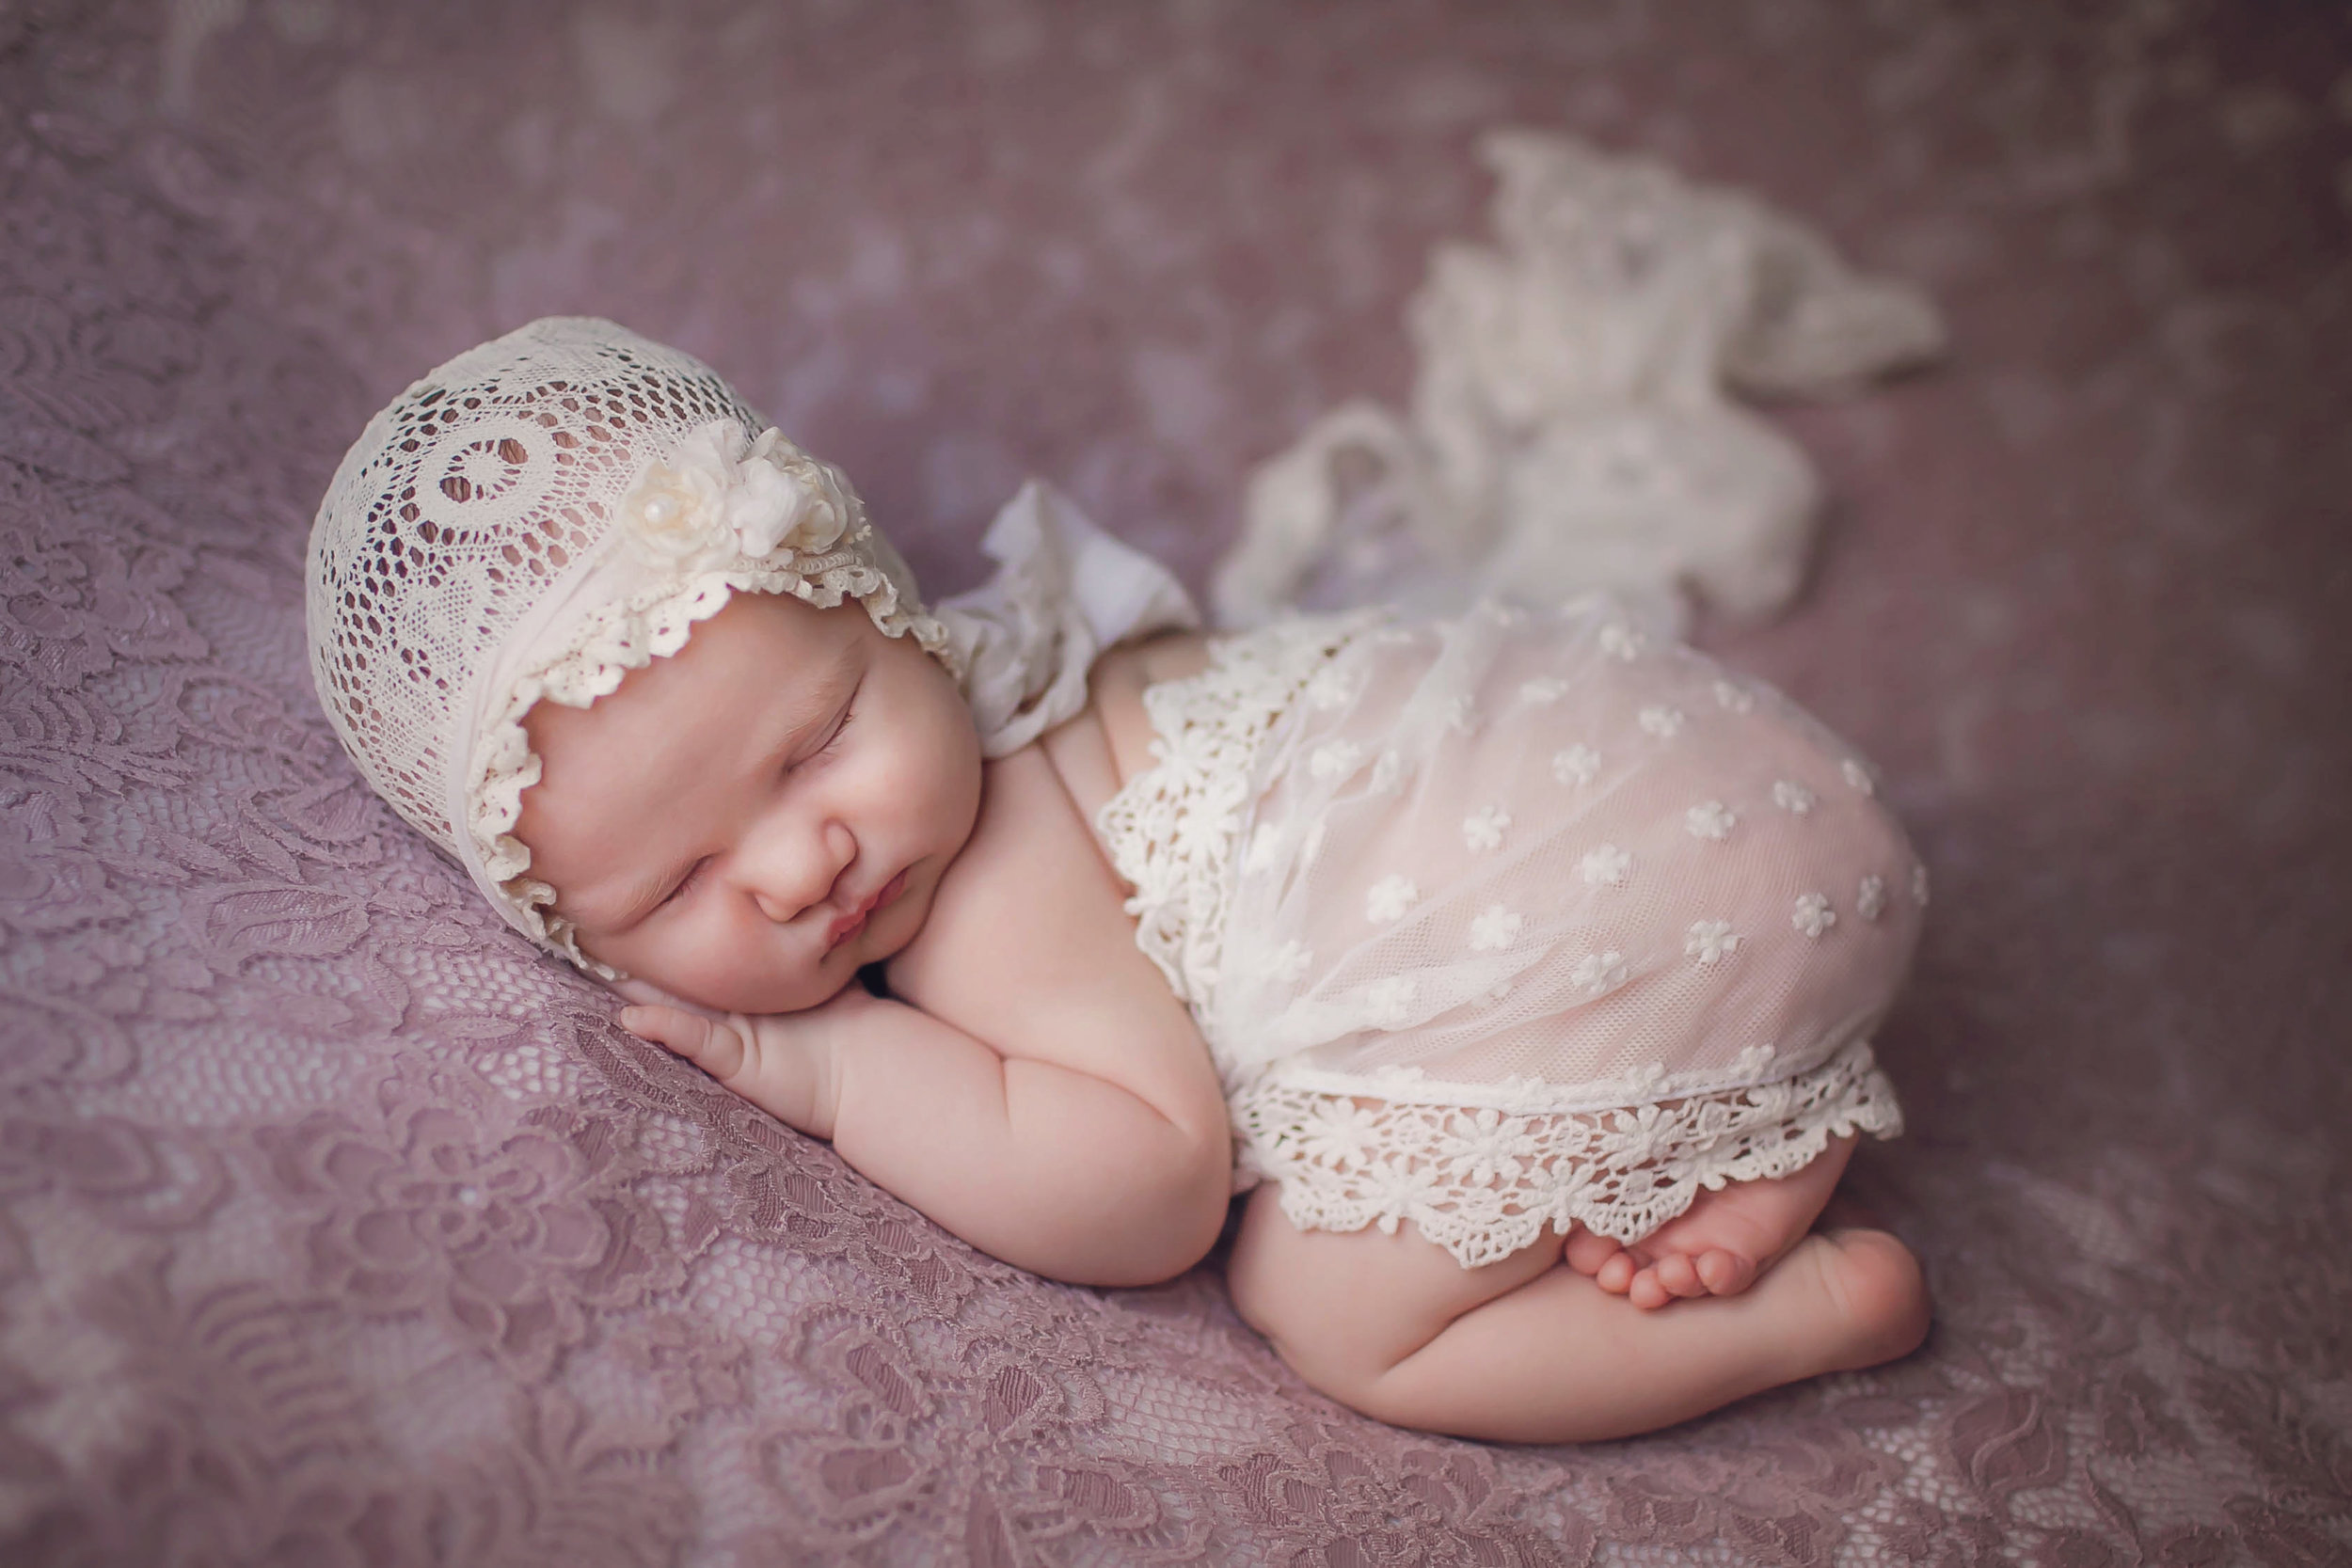 indianapolis-in-newborn-photos-3.jpg